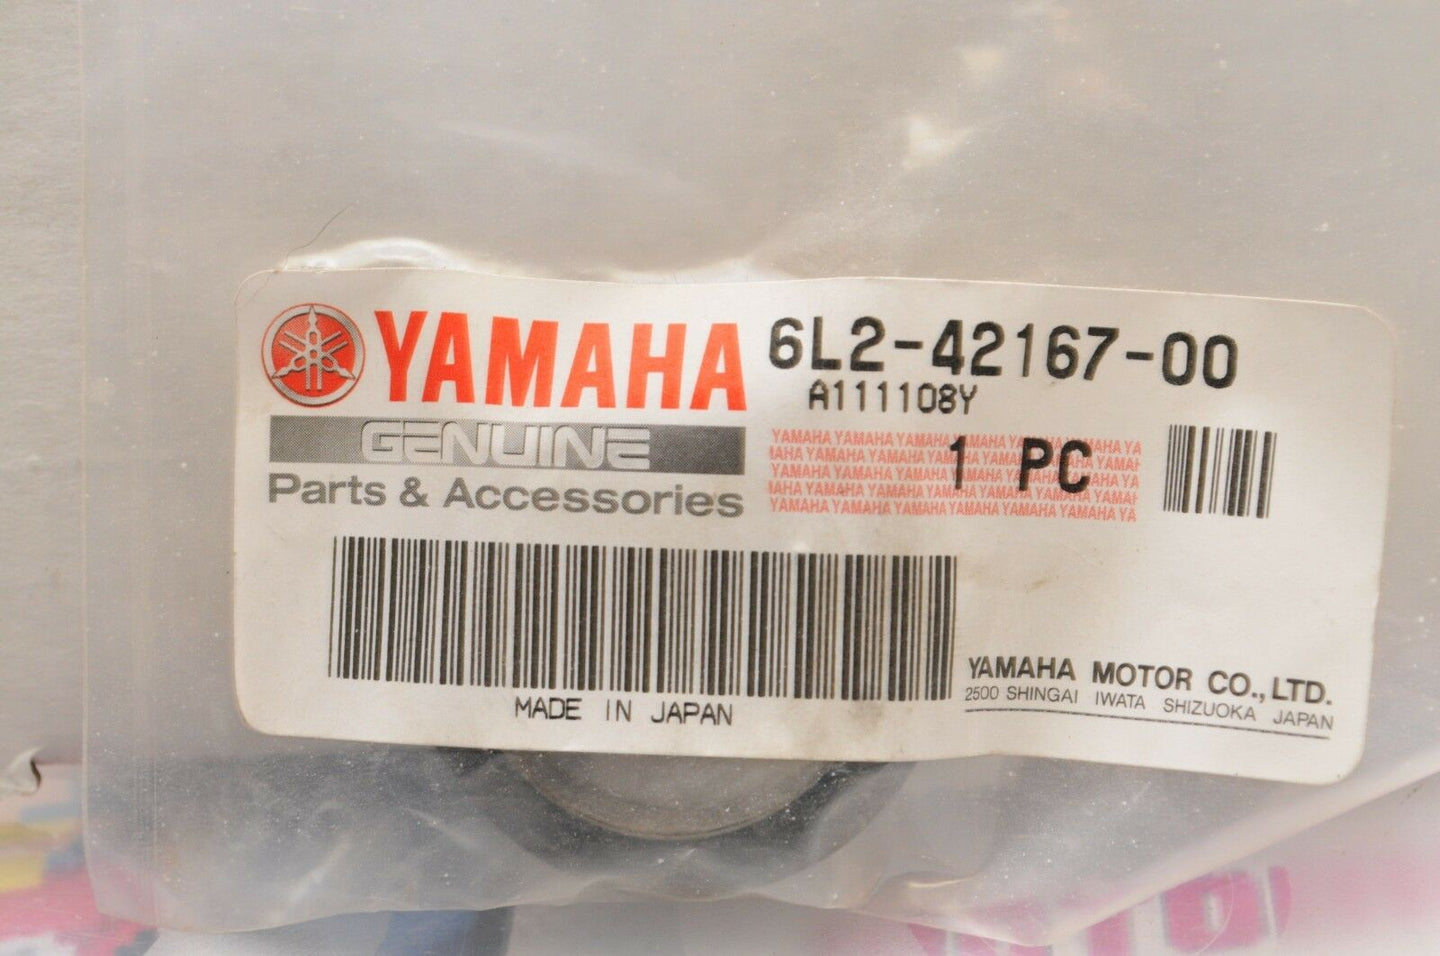 NEW NOS OEM YAMAHA MARINE 6L2-42167-00-00 SPRING1 (THROTTLE) 25 HP OUTBOARD